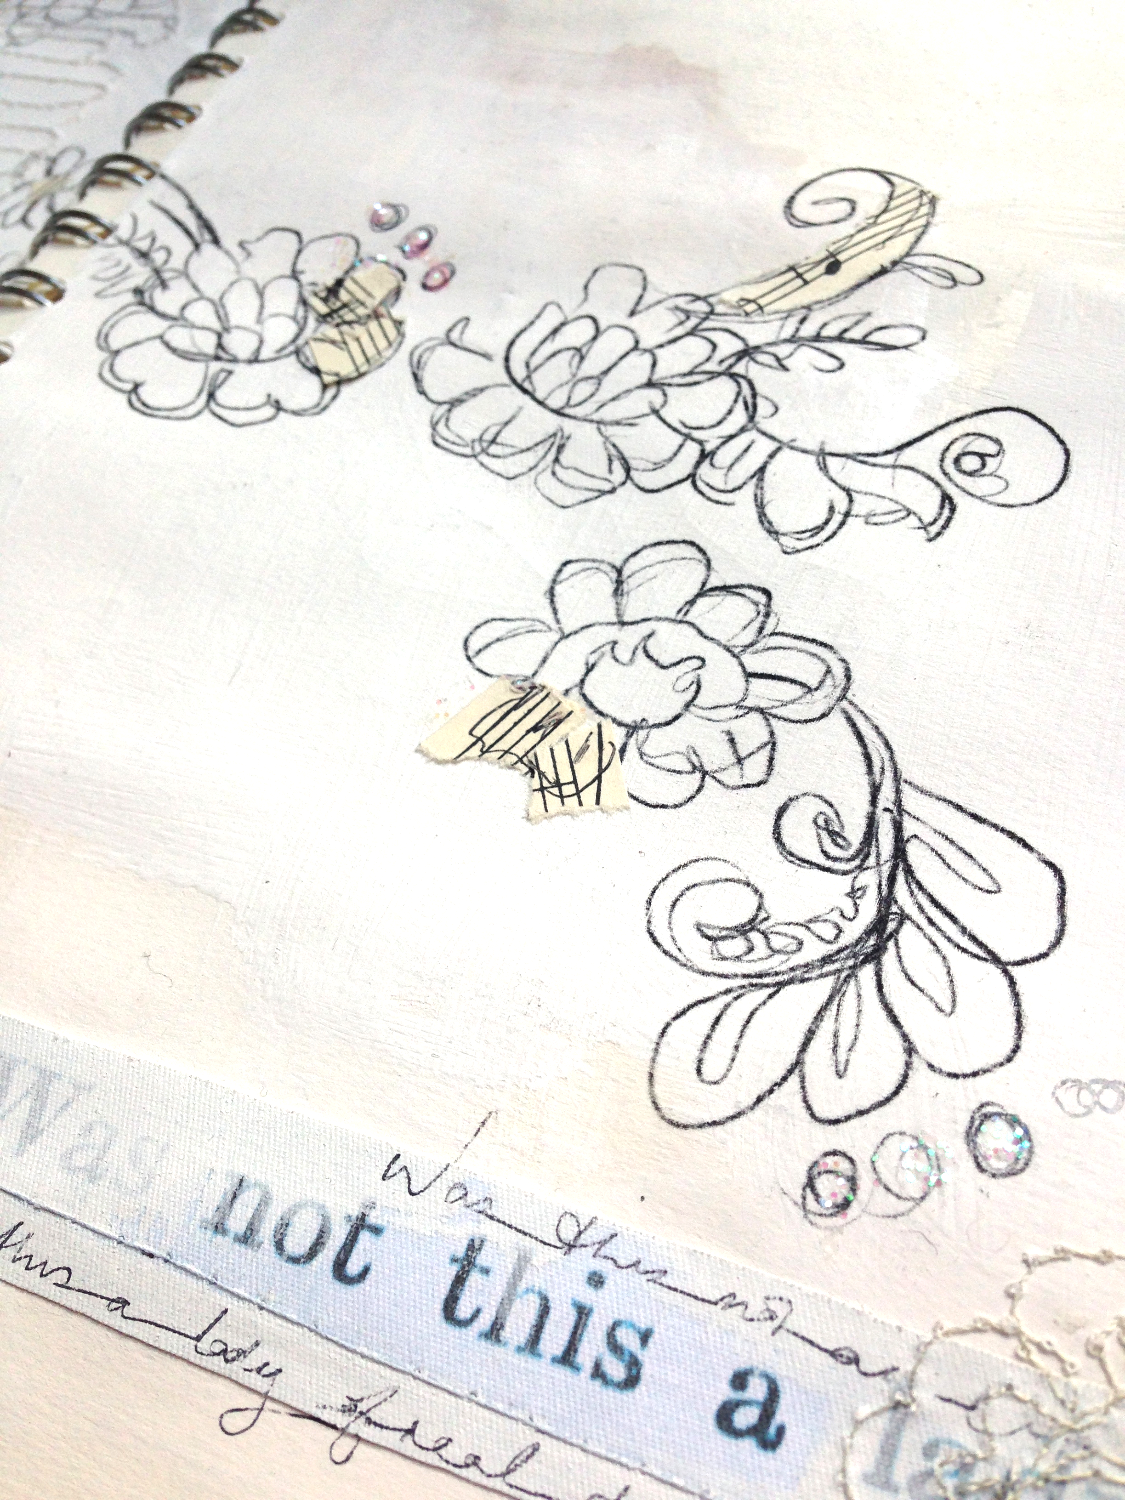 Fairytale sketchbook detail 3